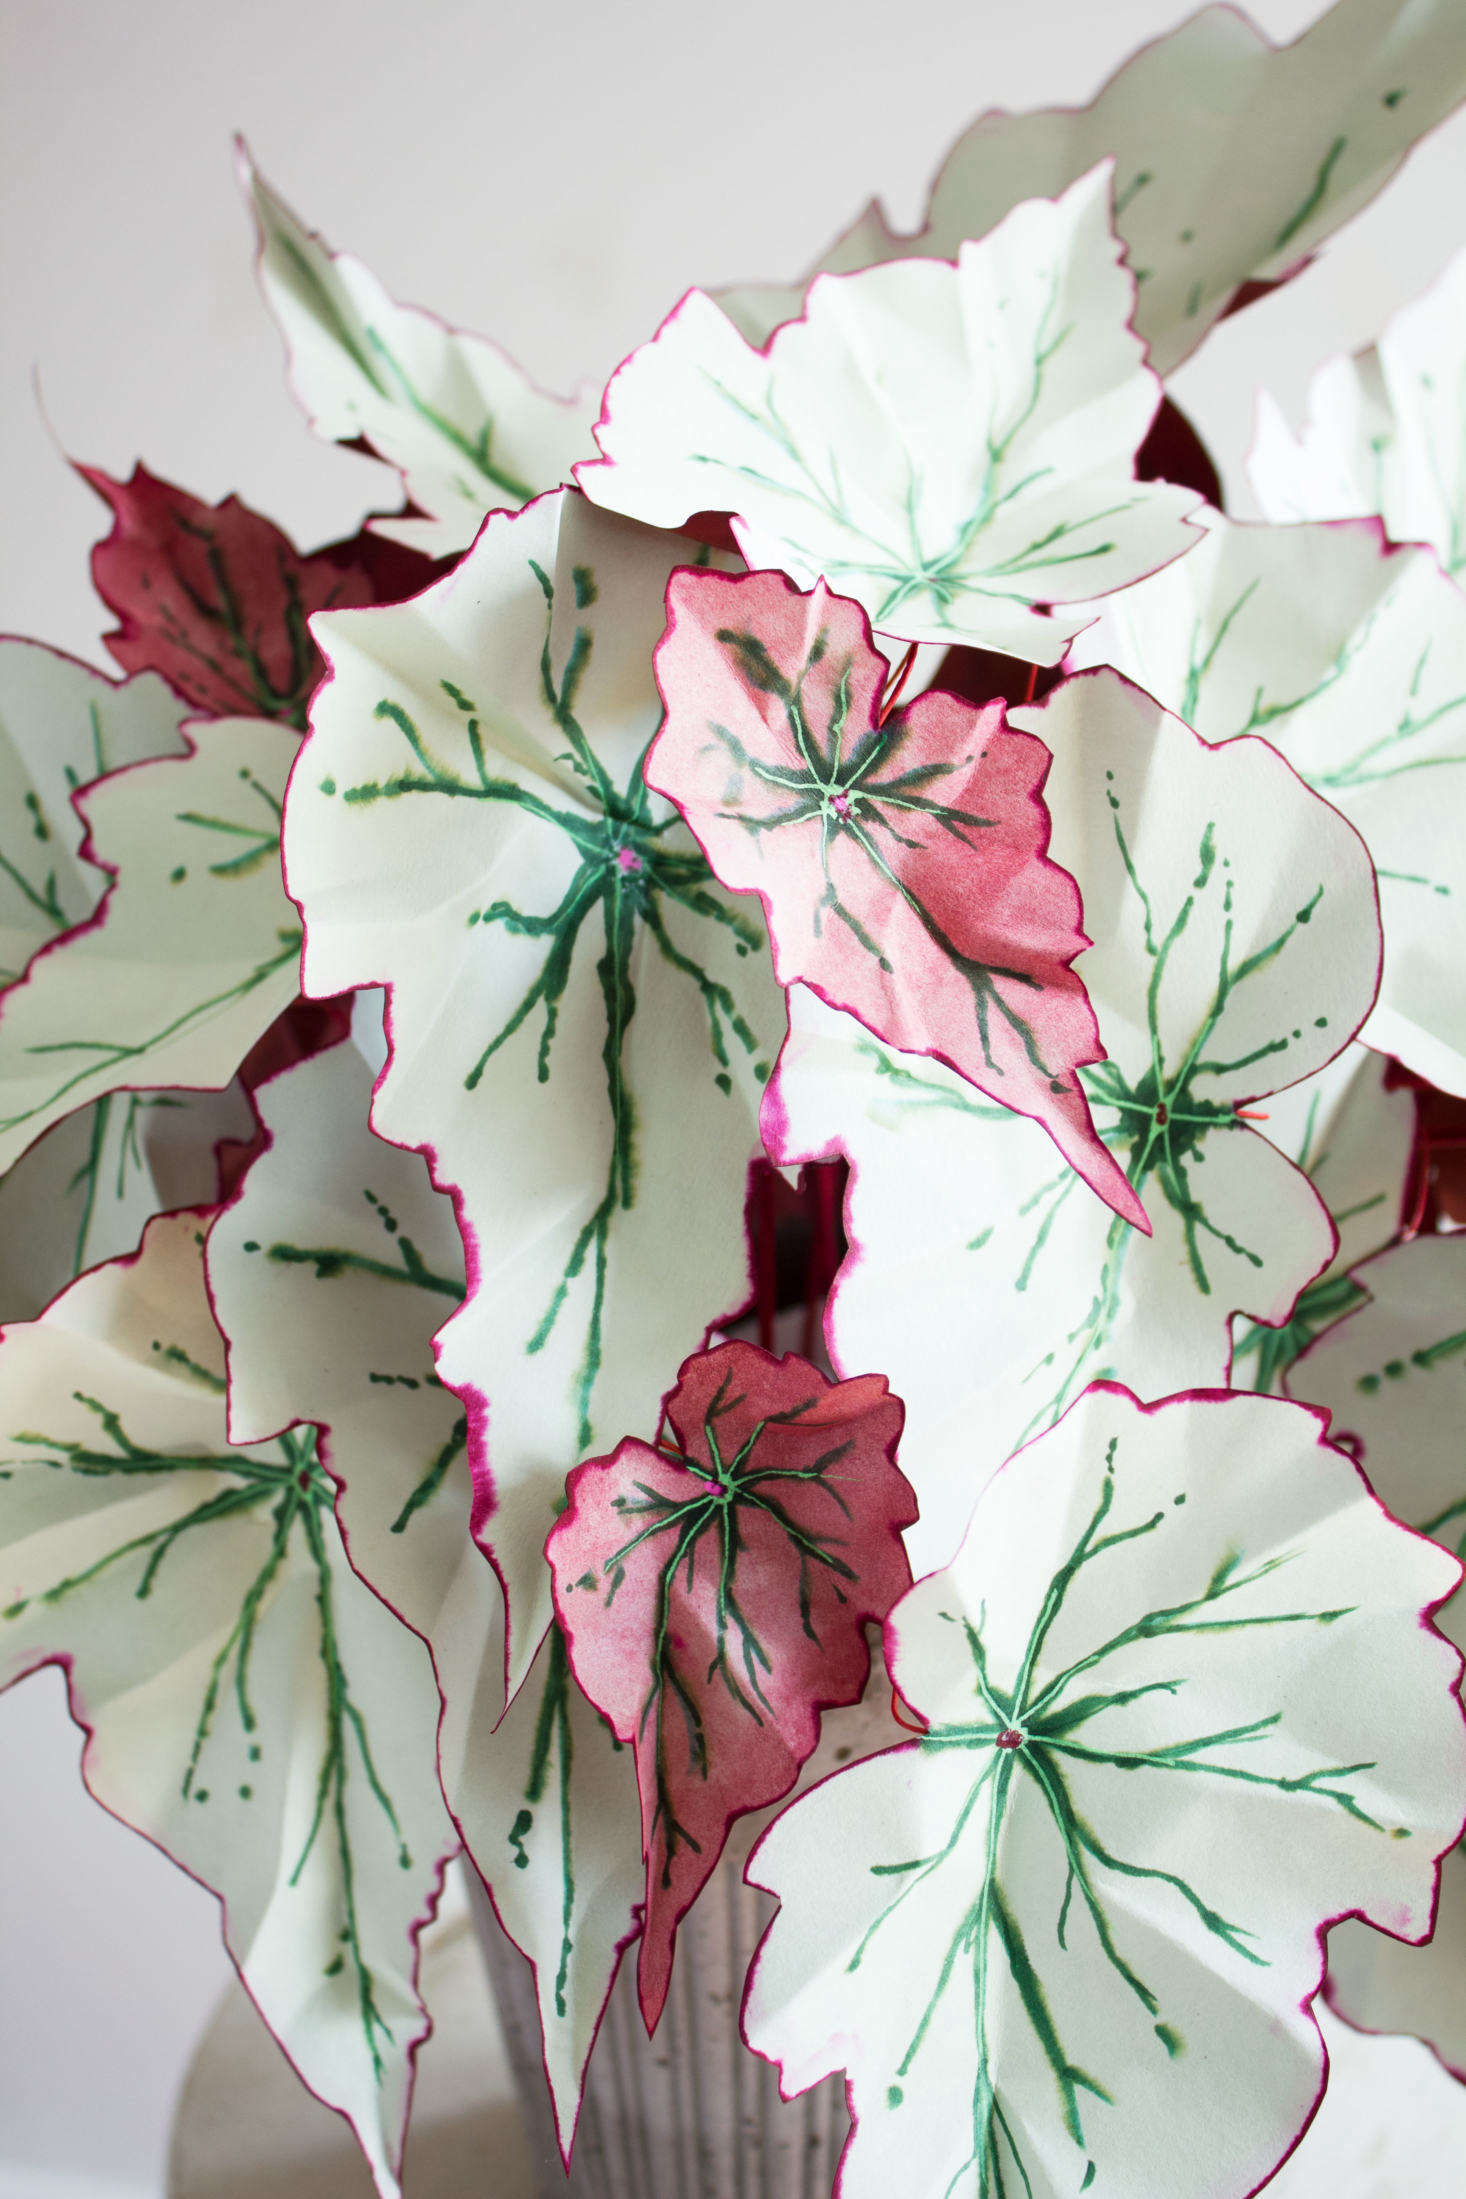 Paper Chase Artful Plant Sculptures By Corrie Beth Hogg For Grdn